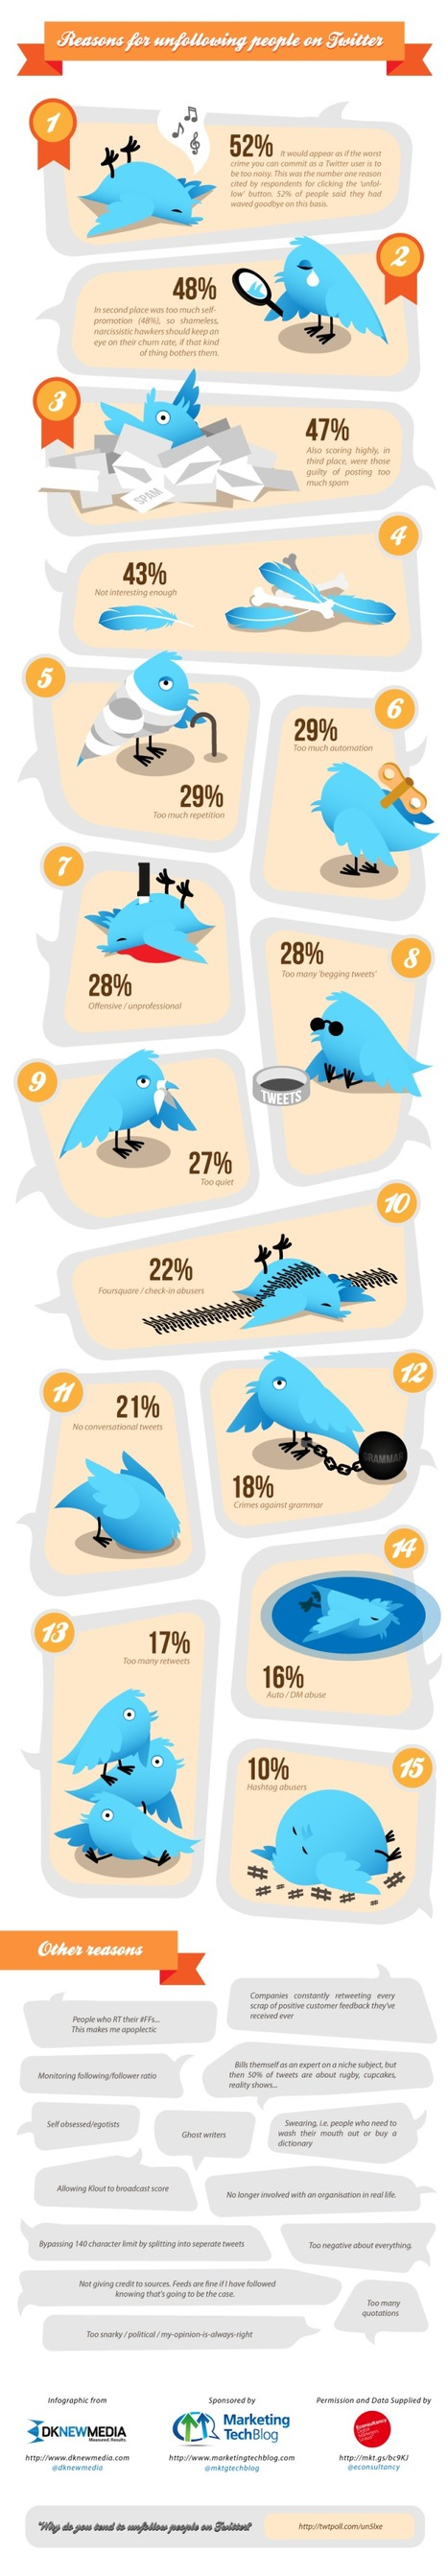 15 Twitter Statistics You Probably Don't Know, But Should [Infographic] -   Social Media Magazine(SMM): Social Media Content Curation & Marketing Strategies   Scoop.it